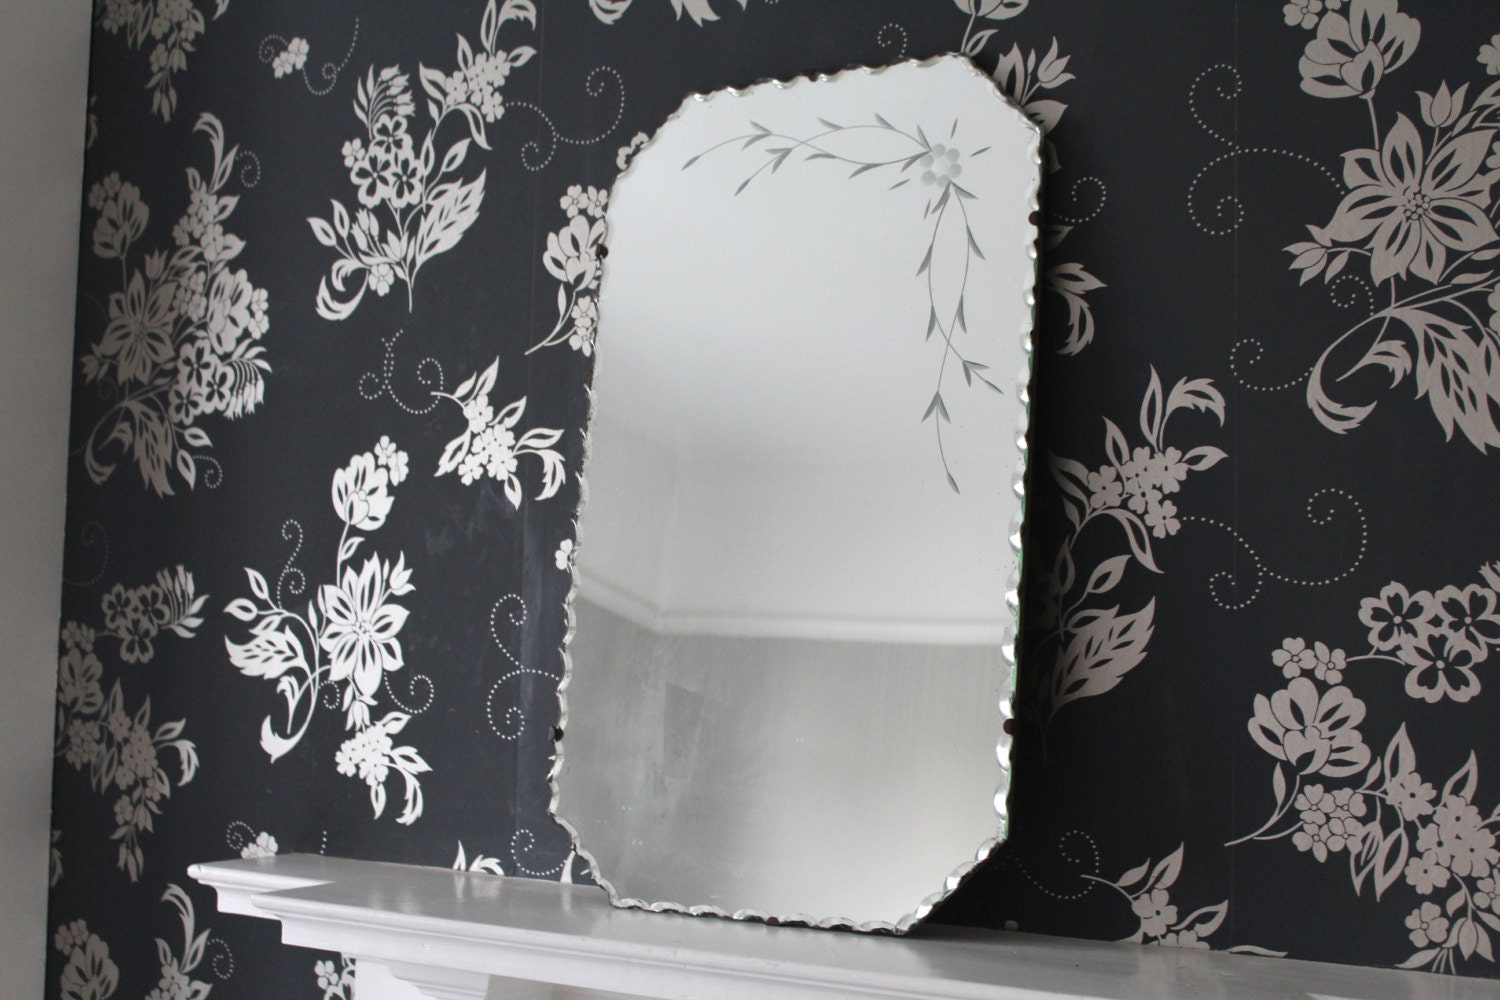 Vintage frameless mirror with decorative edge and flower